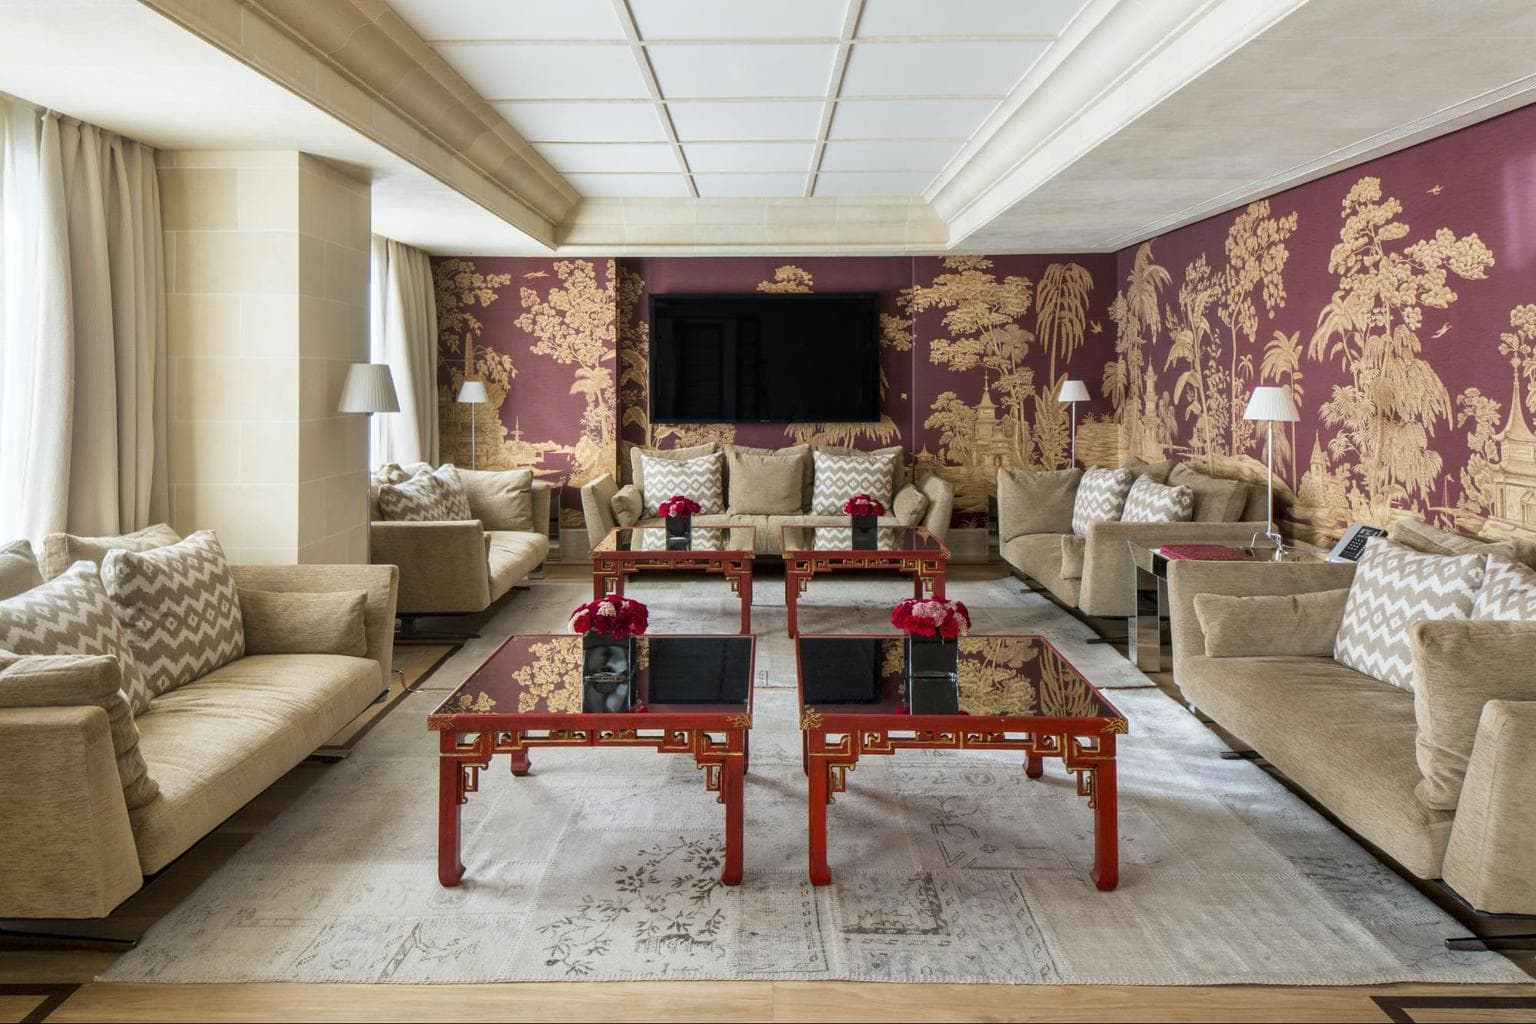 The Royal Majestic Penthouse living room